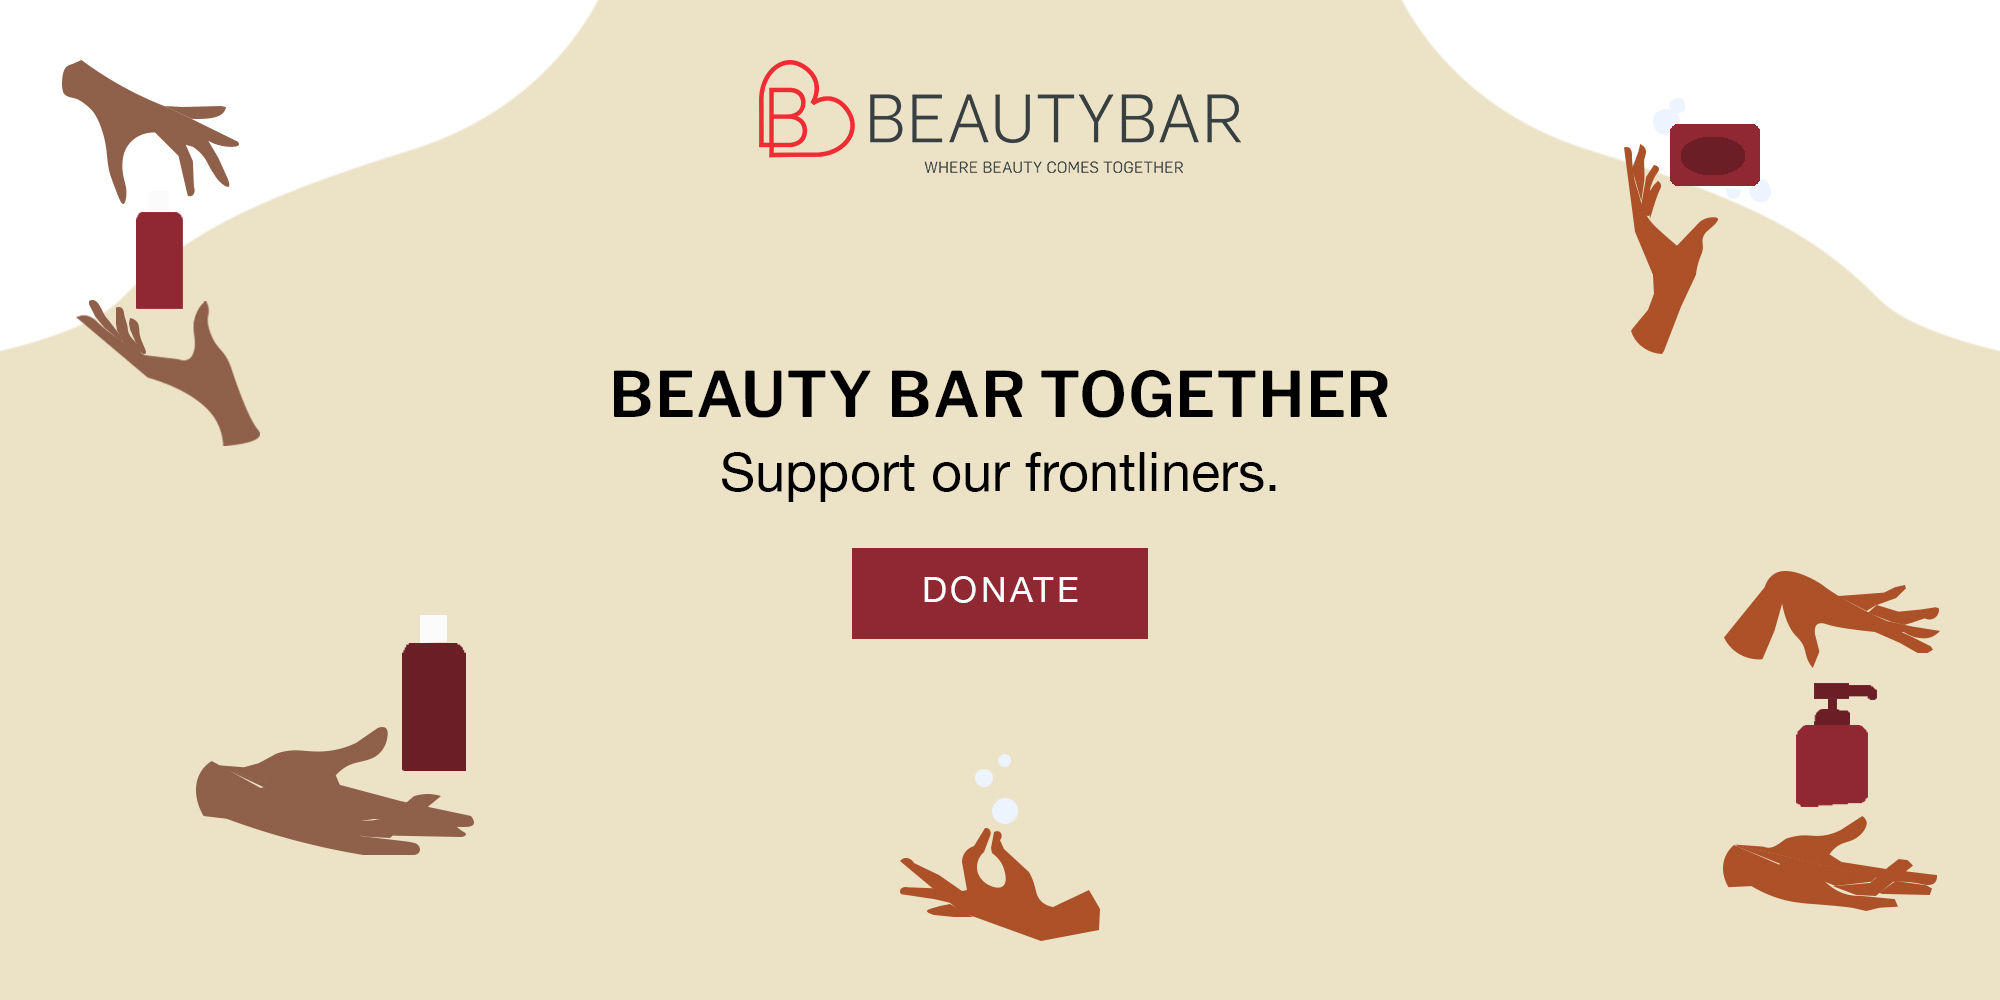 Donate a self-care gift set to a frontliner with Beauty Bar